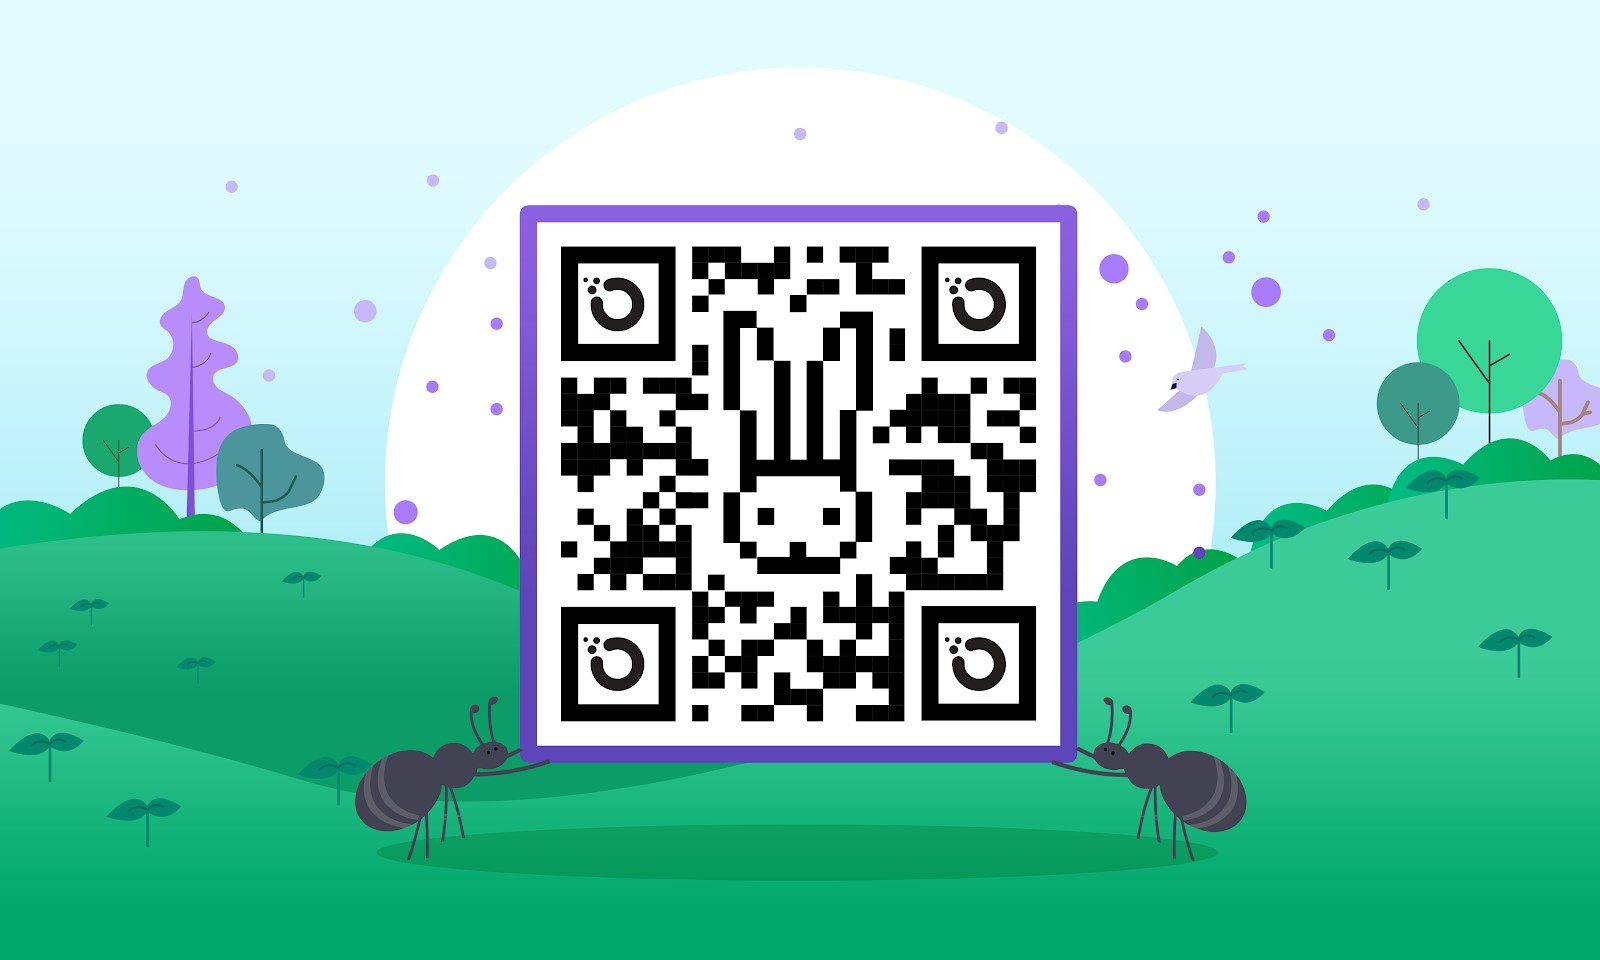 Get hopping faster: Making privacy easier with QR codes